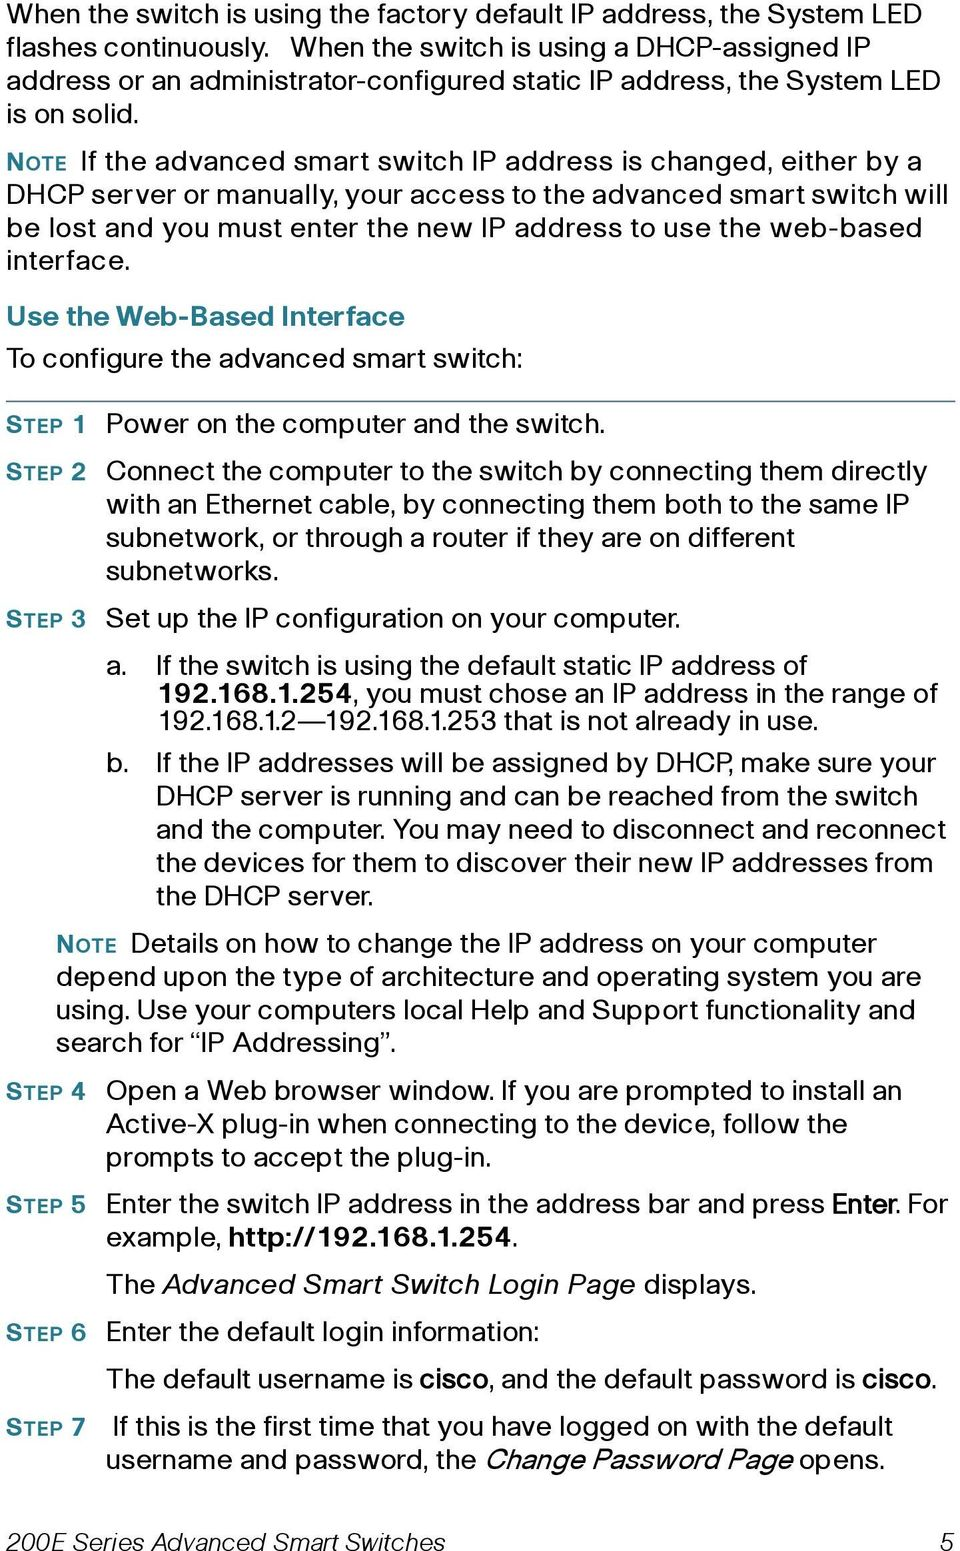 NOTE If the advanced smart switch IP address is changed, either by a DHCP server or manually, your access to the advanced smart switch will be lost and you must enter the new IP address to use the